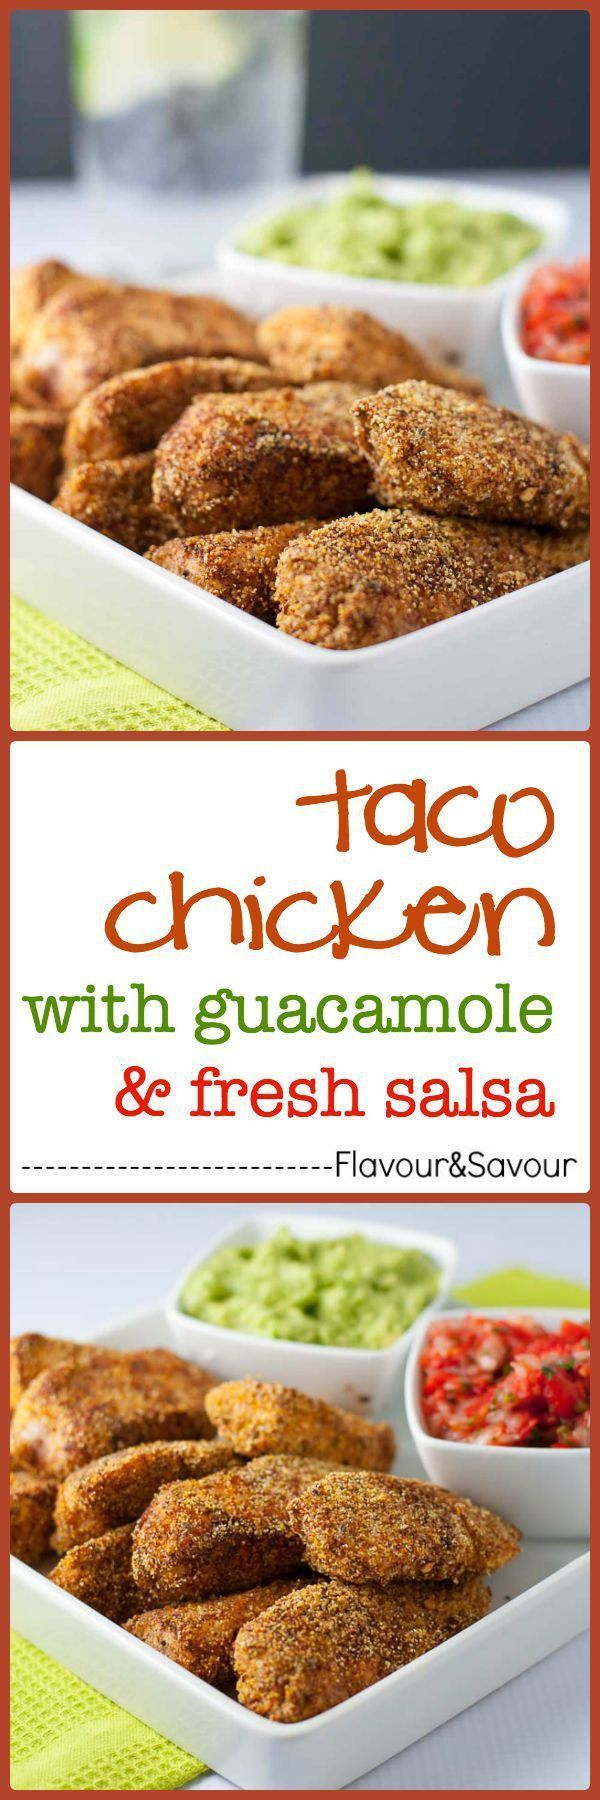 Taco Chicken Strips with Guacamole and Fresh Salsa for dipping. Ready in 30 minutes!  www.flavourandsavour.com